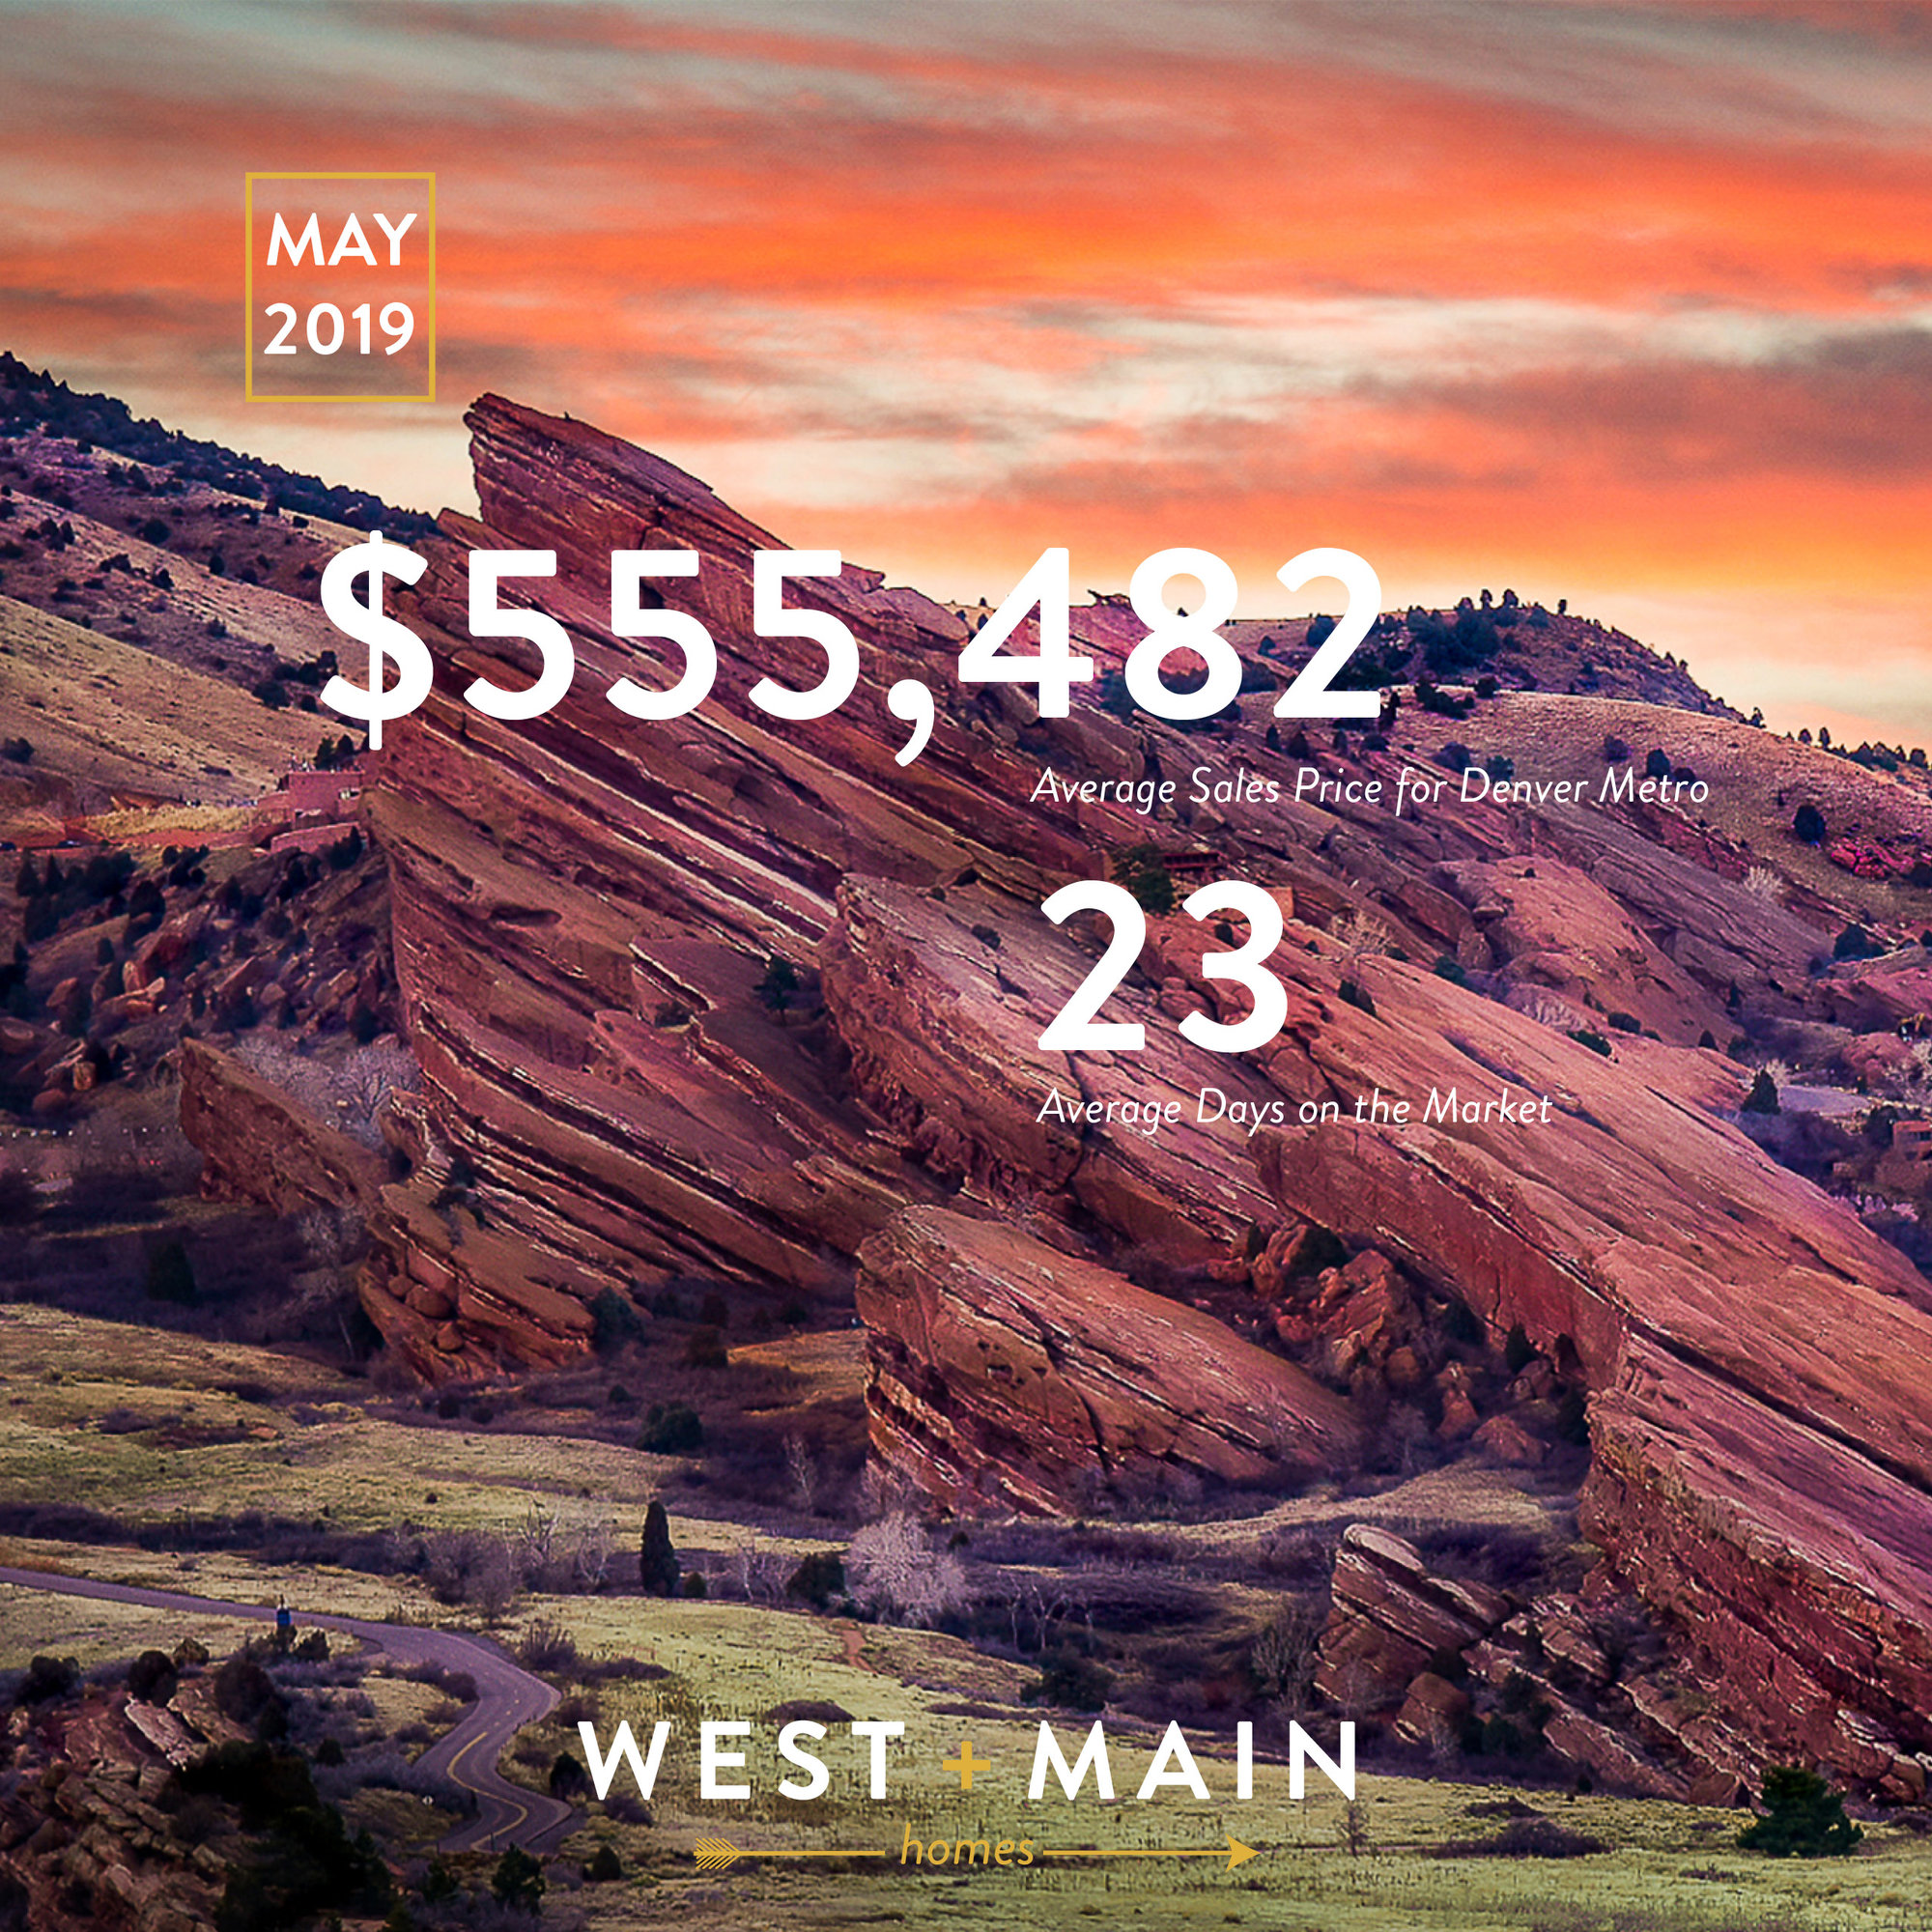 COLORADO'S REAL ESTATE MARKET REPORT - STATS FROM MAY 2019